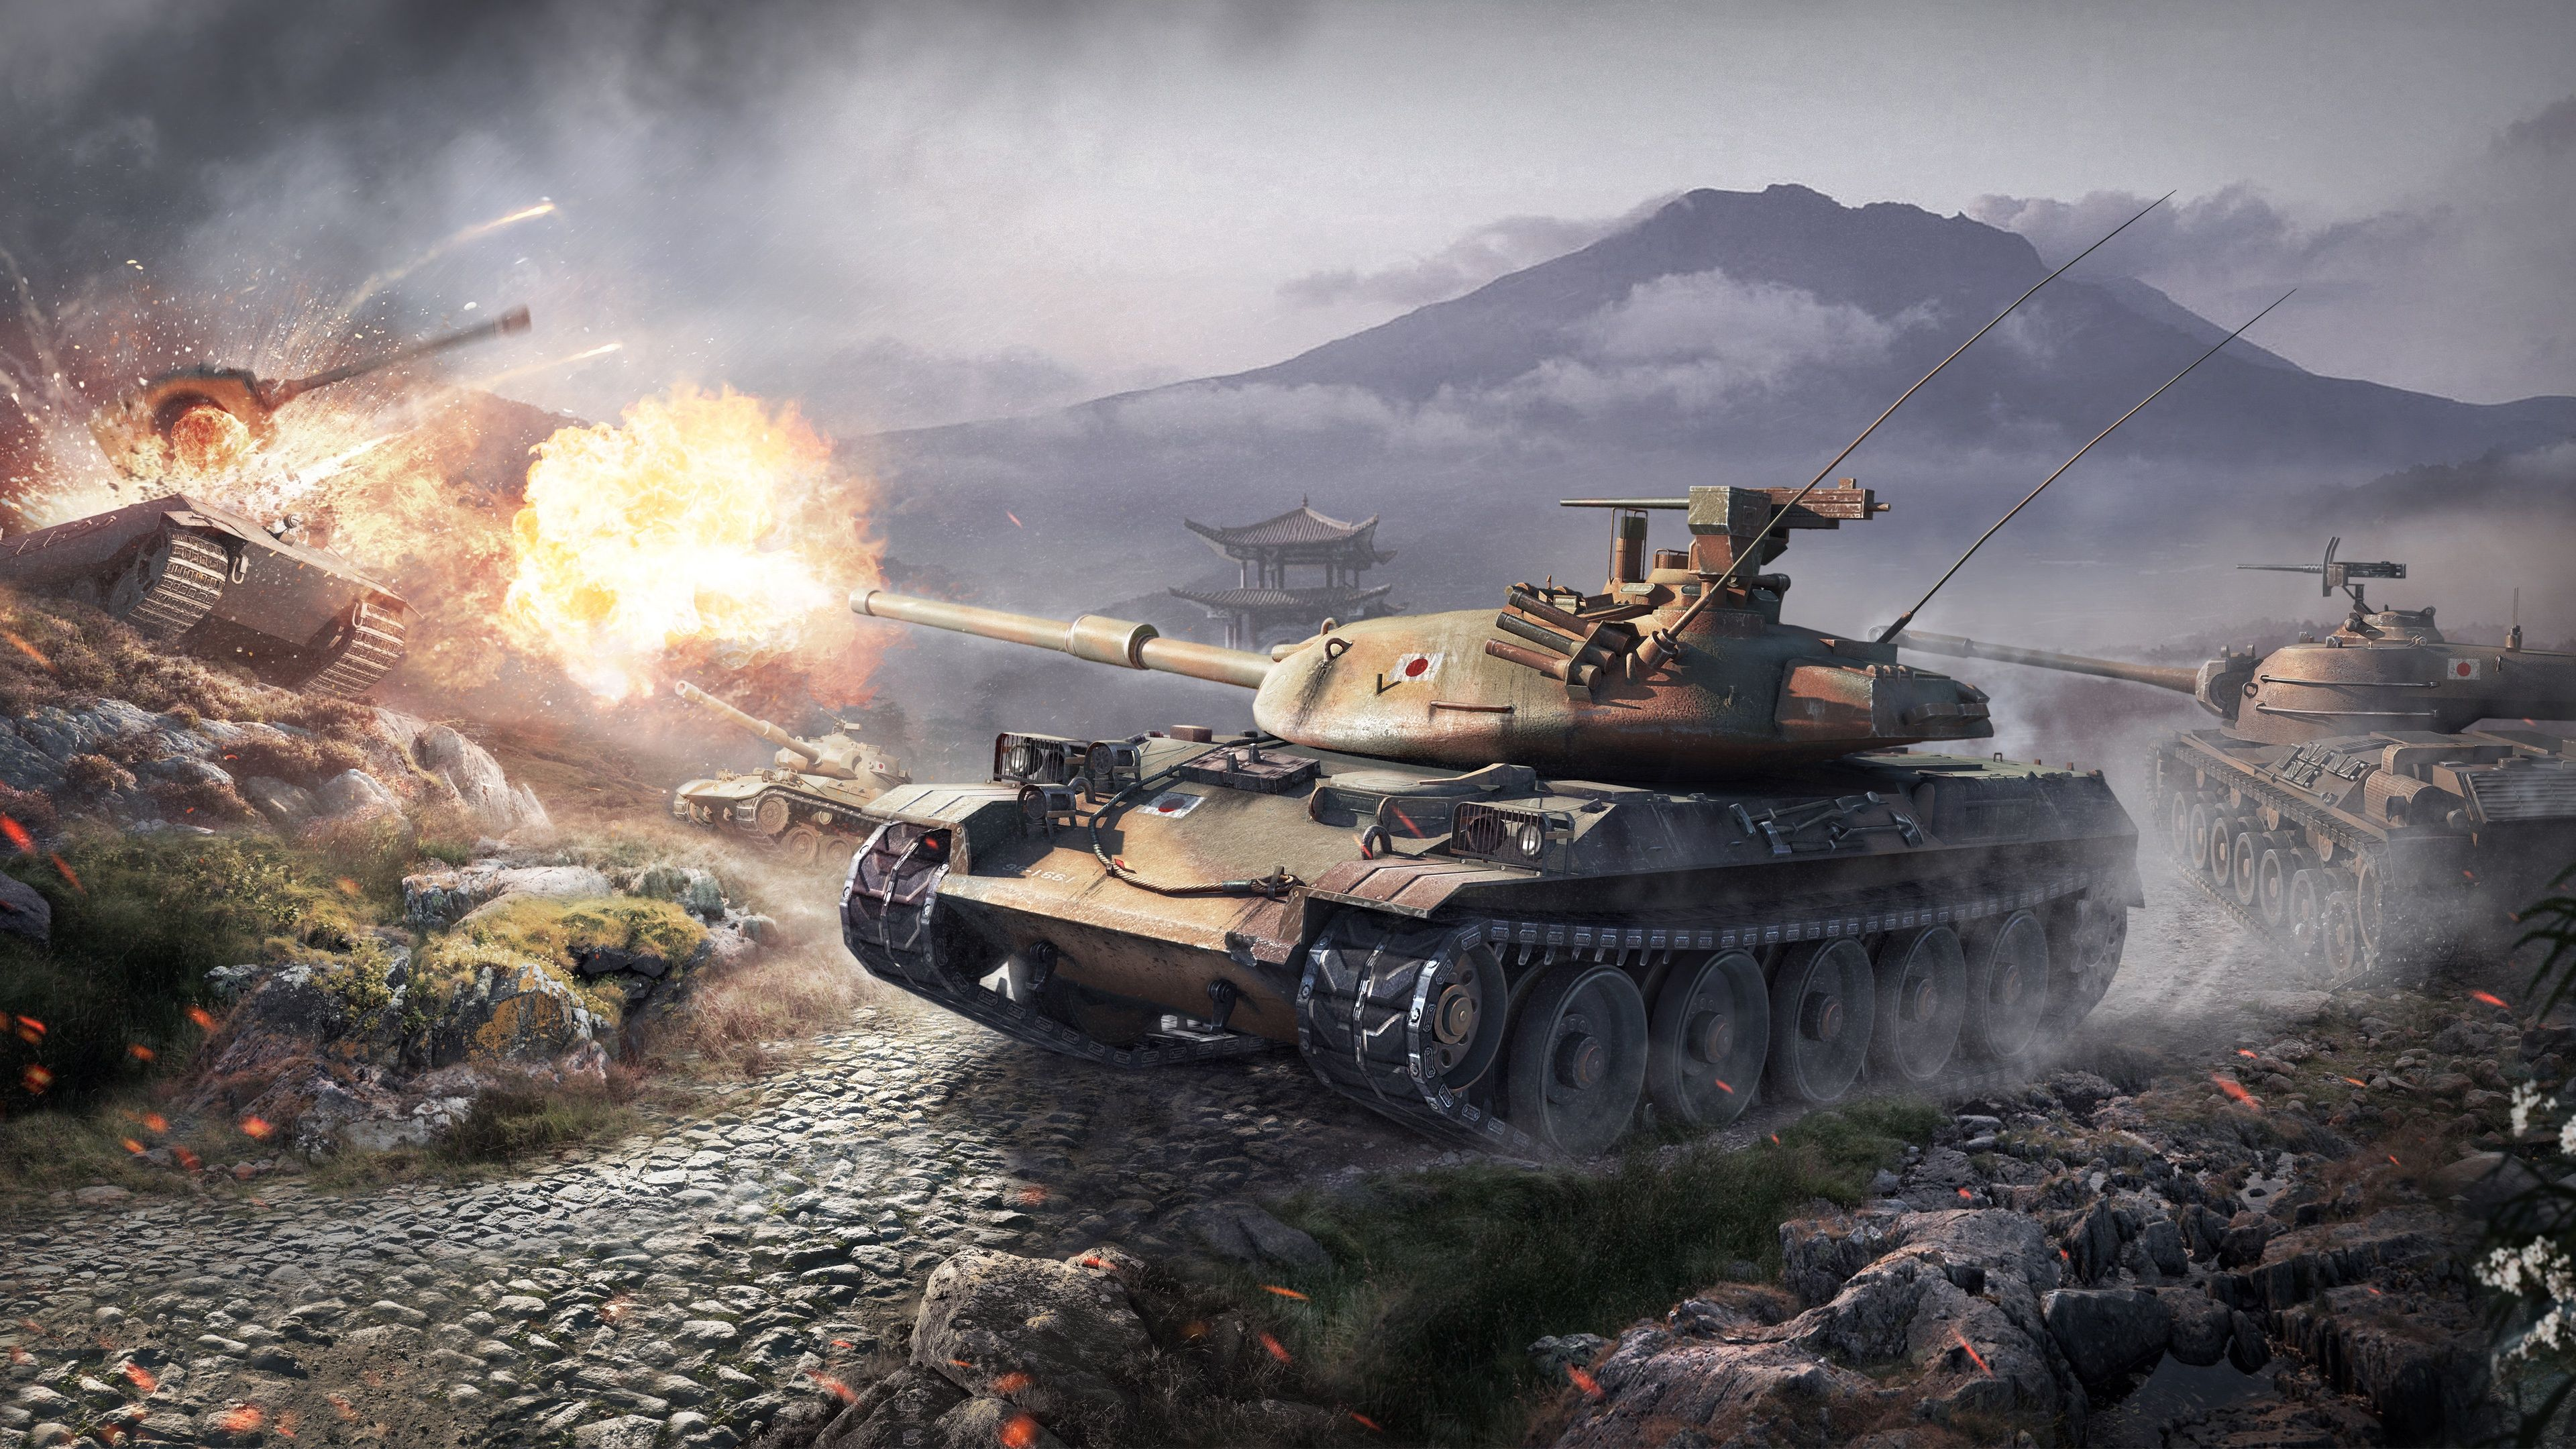 World Of Tanks Xbox Games Wallpapers World Of Tanks Wallpapers Games Wallpapers Tank Wallpaper World Of Tanks World Of Tanks Game